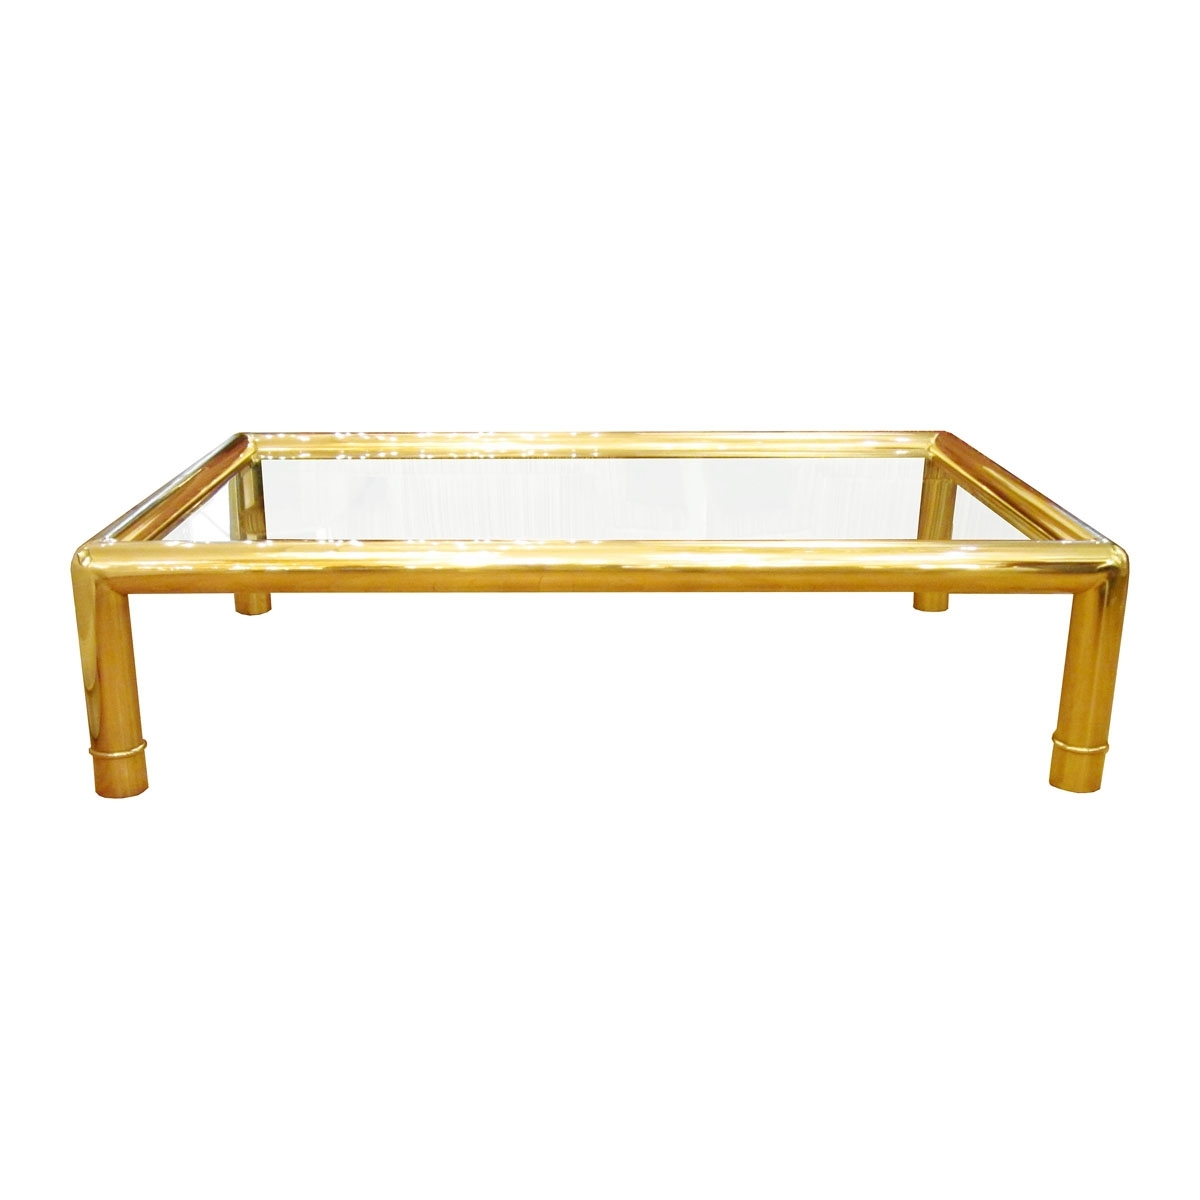 Rectangular Coffee Table With Tubular Brass Frame And Glass Top Within Best And Newest Rectangular Coffee Tables With Brass Legs (View 6 of 20)